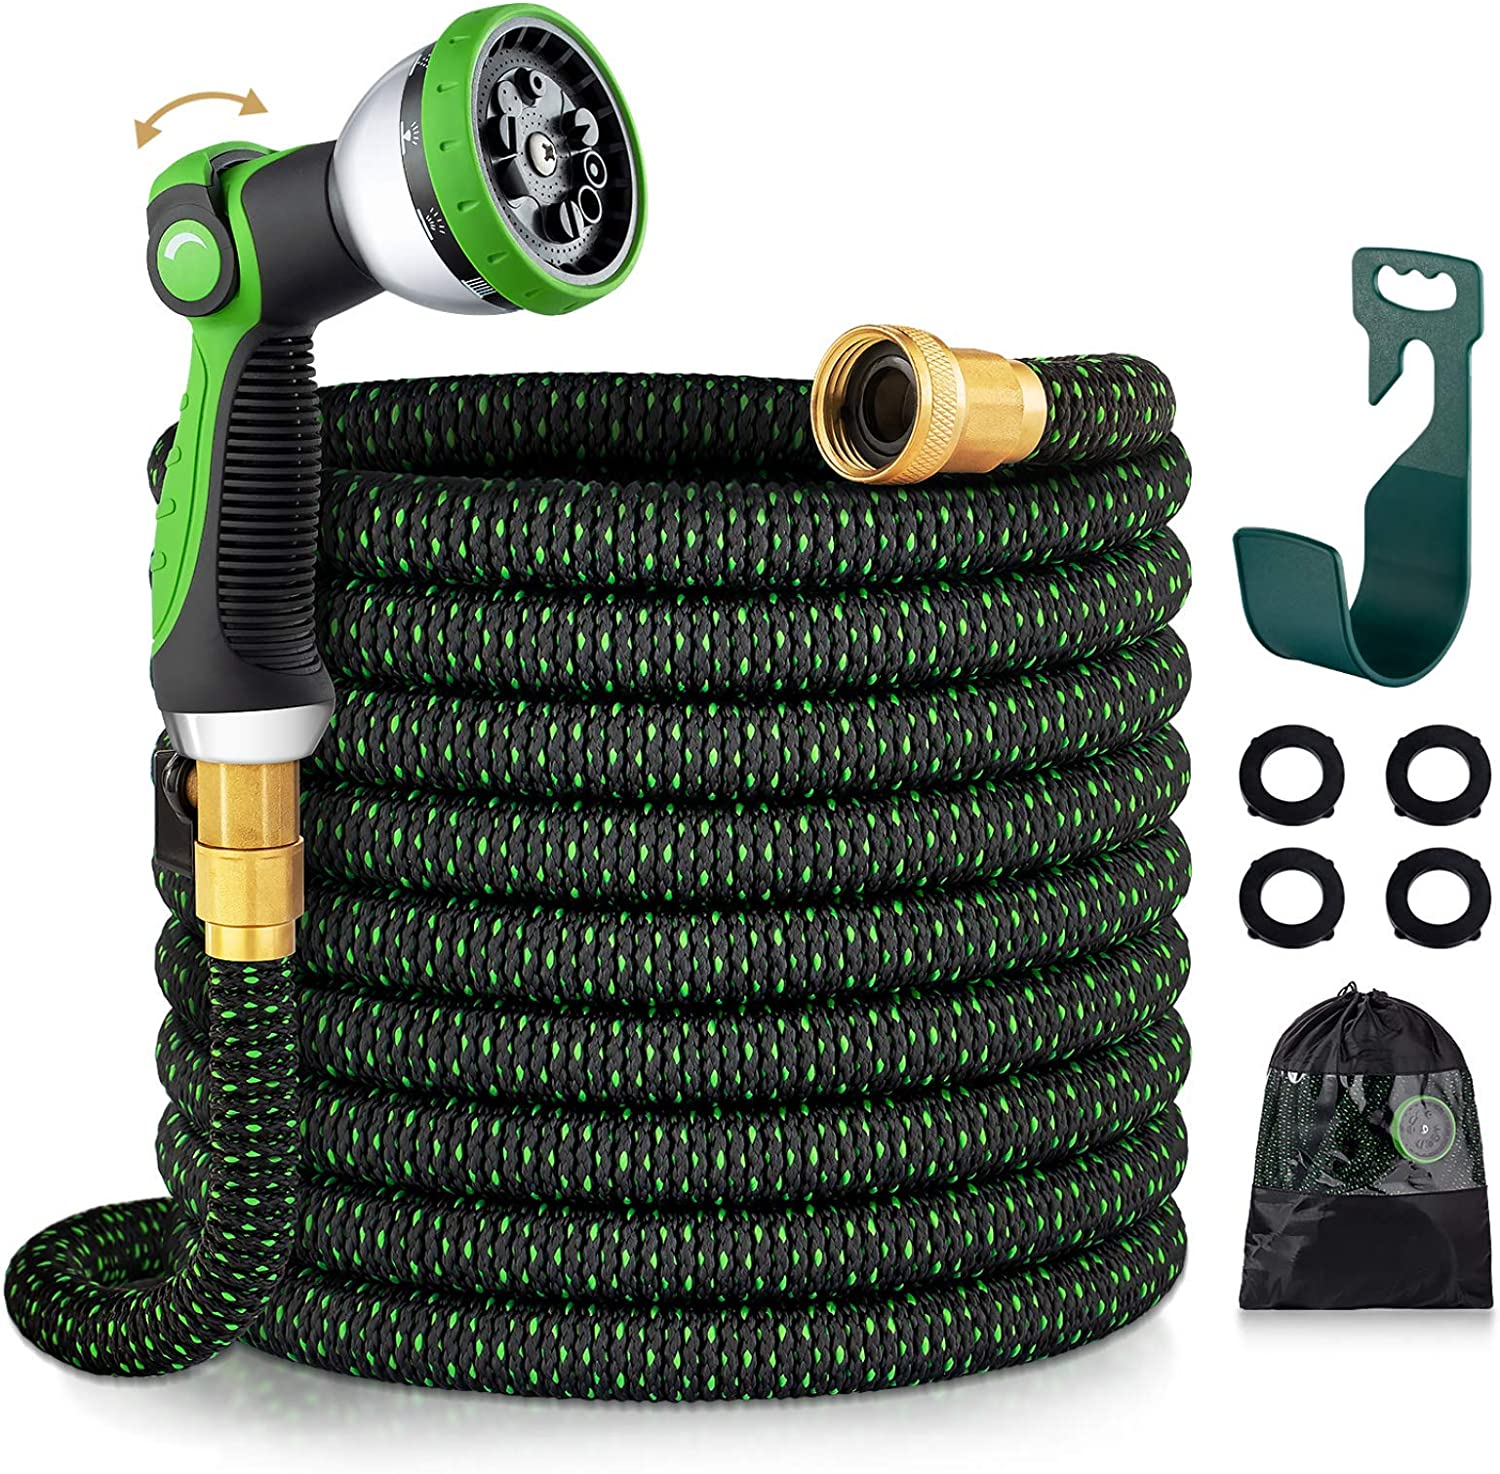 Ecoehoe 100 FT Expandable Garden Hose with Easy to Use Thumb Control Sprayer, Space Saving Hoses That Shrink, 3 Times Expandable Water Hoses for Lawns